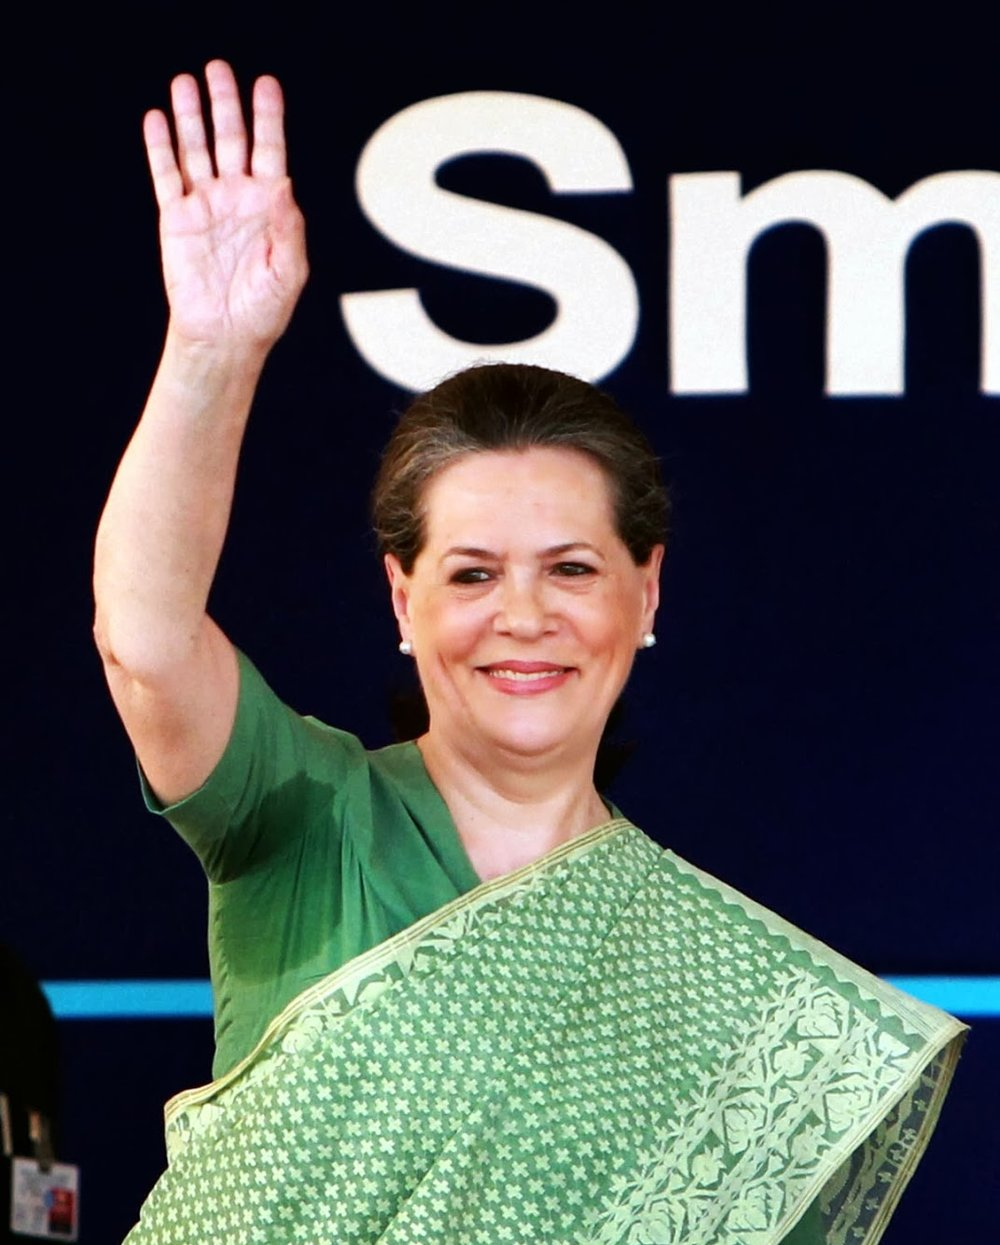 Sonia Gandhi - Former President of the Indian National Congress